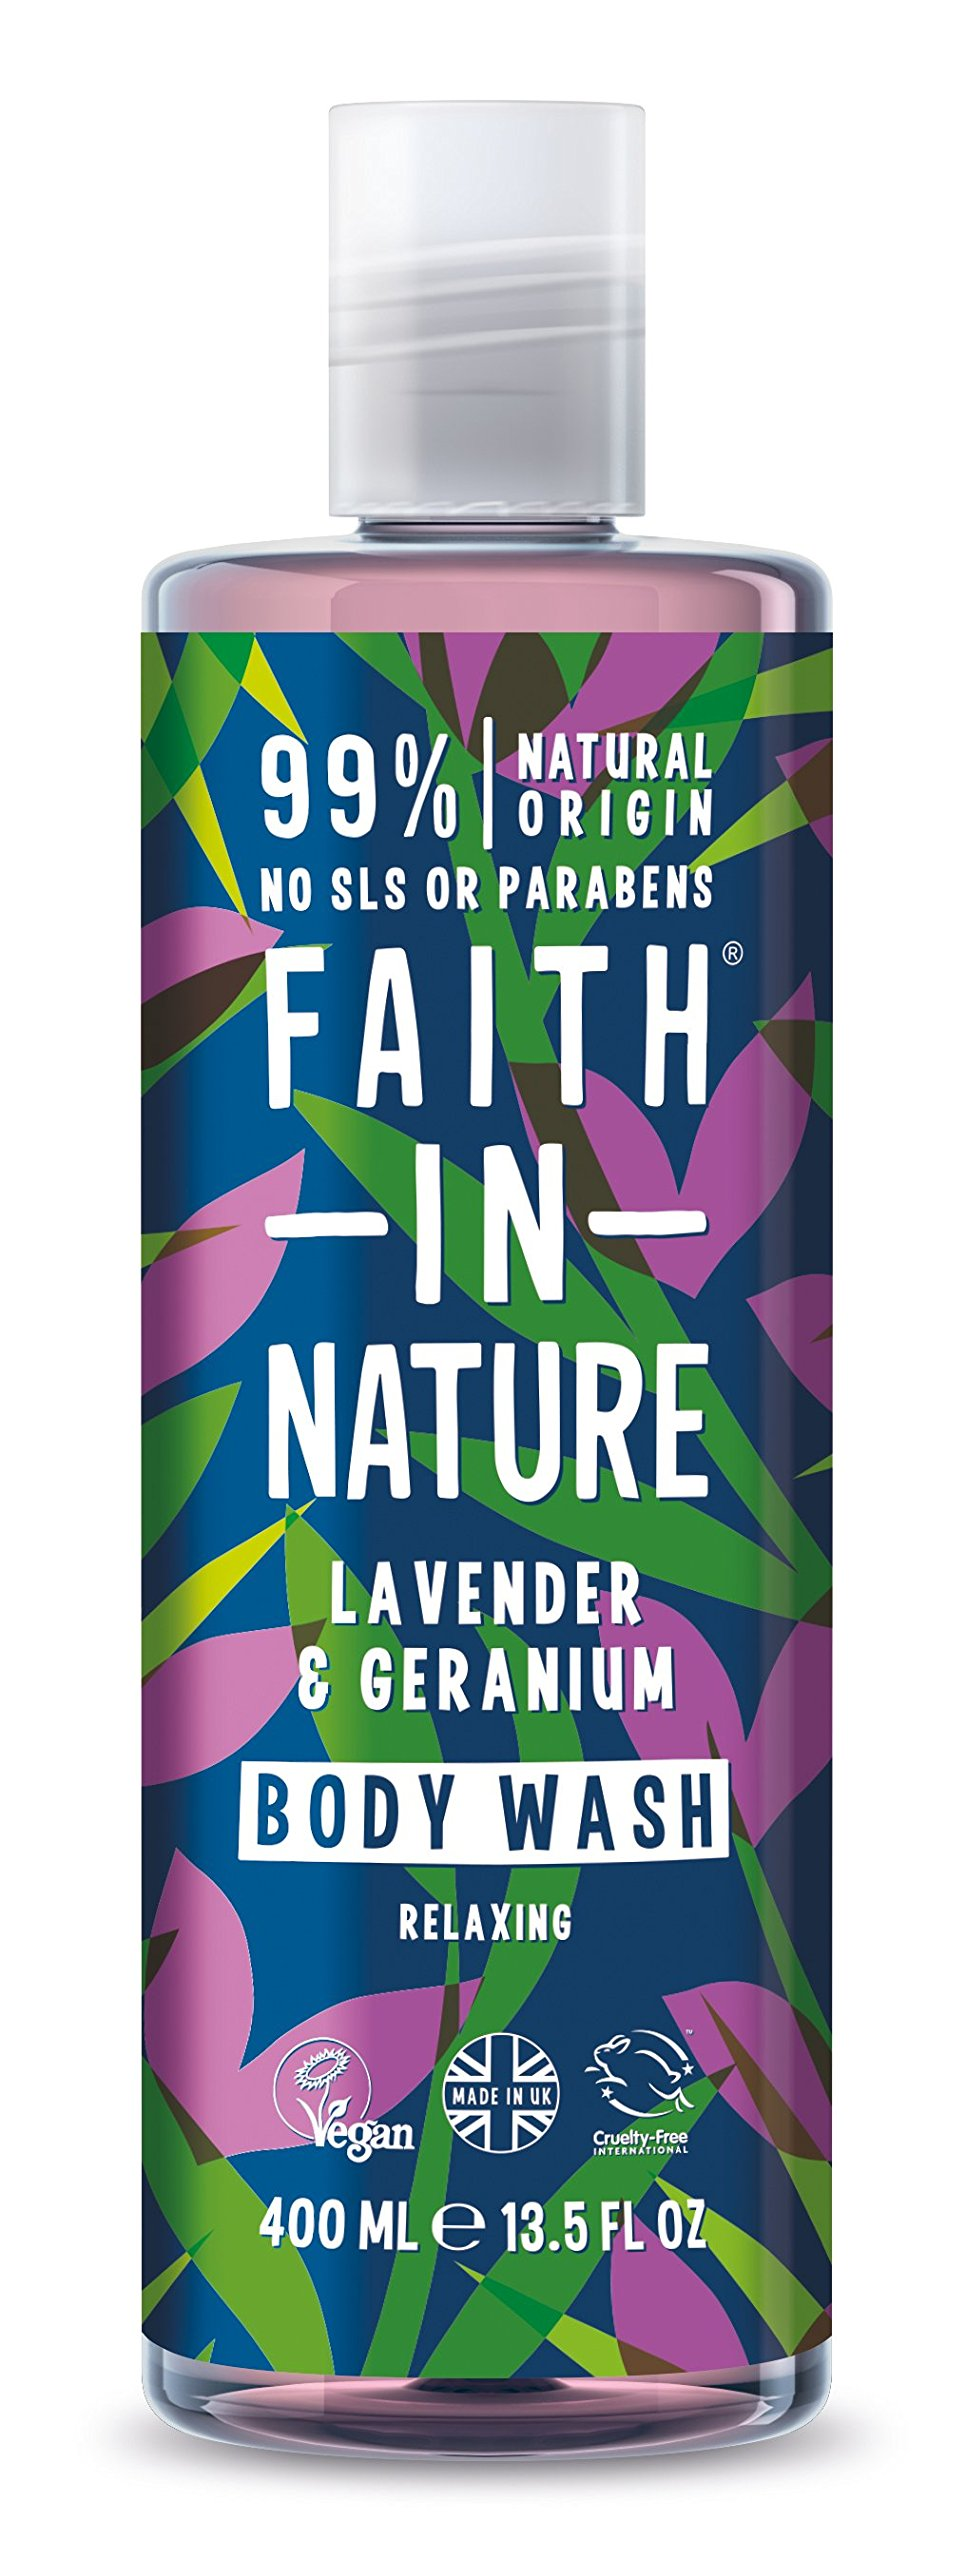 Faith in Nature, Geranium and Lavender Body Wash, 400ml